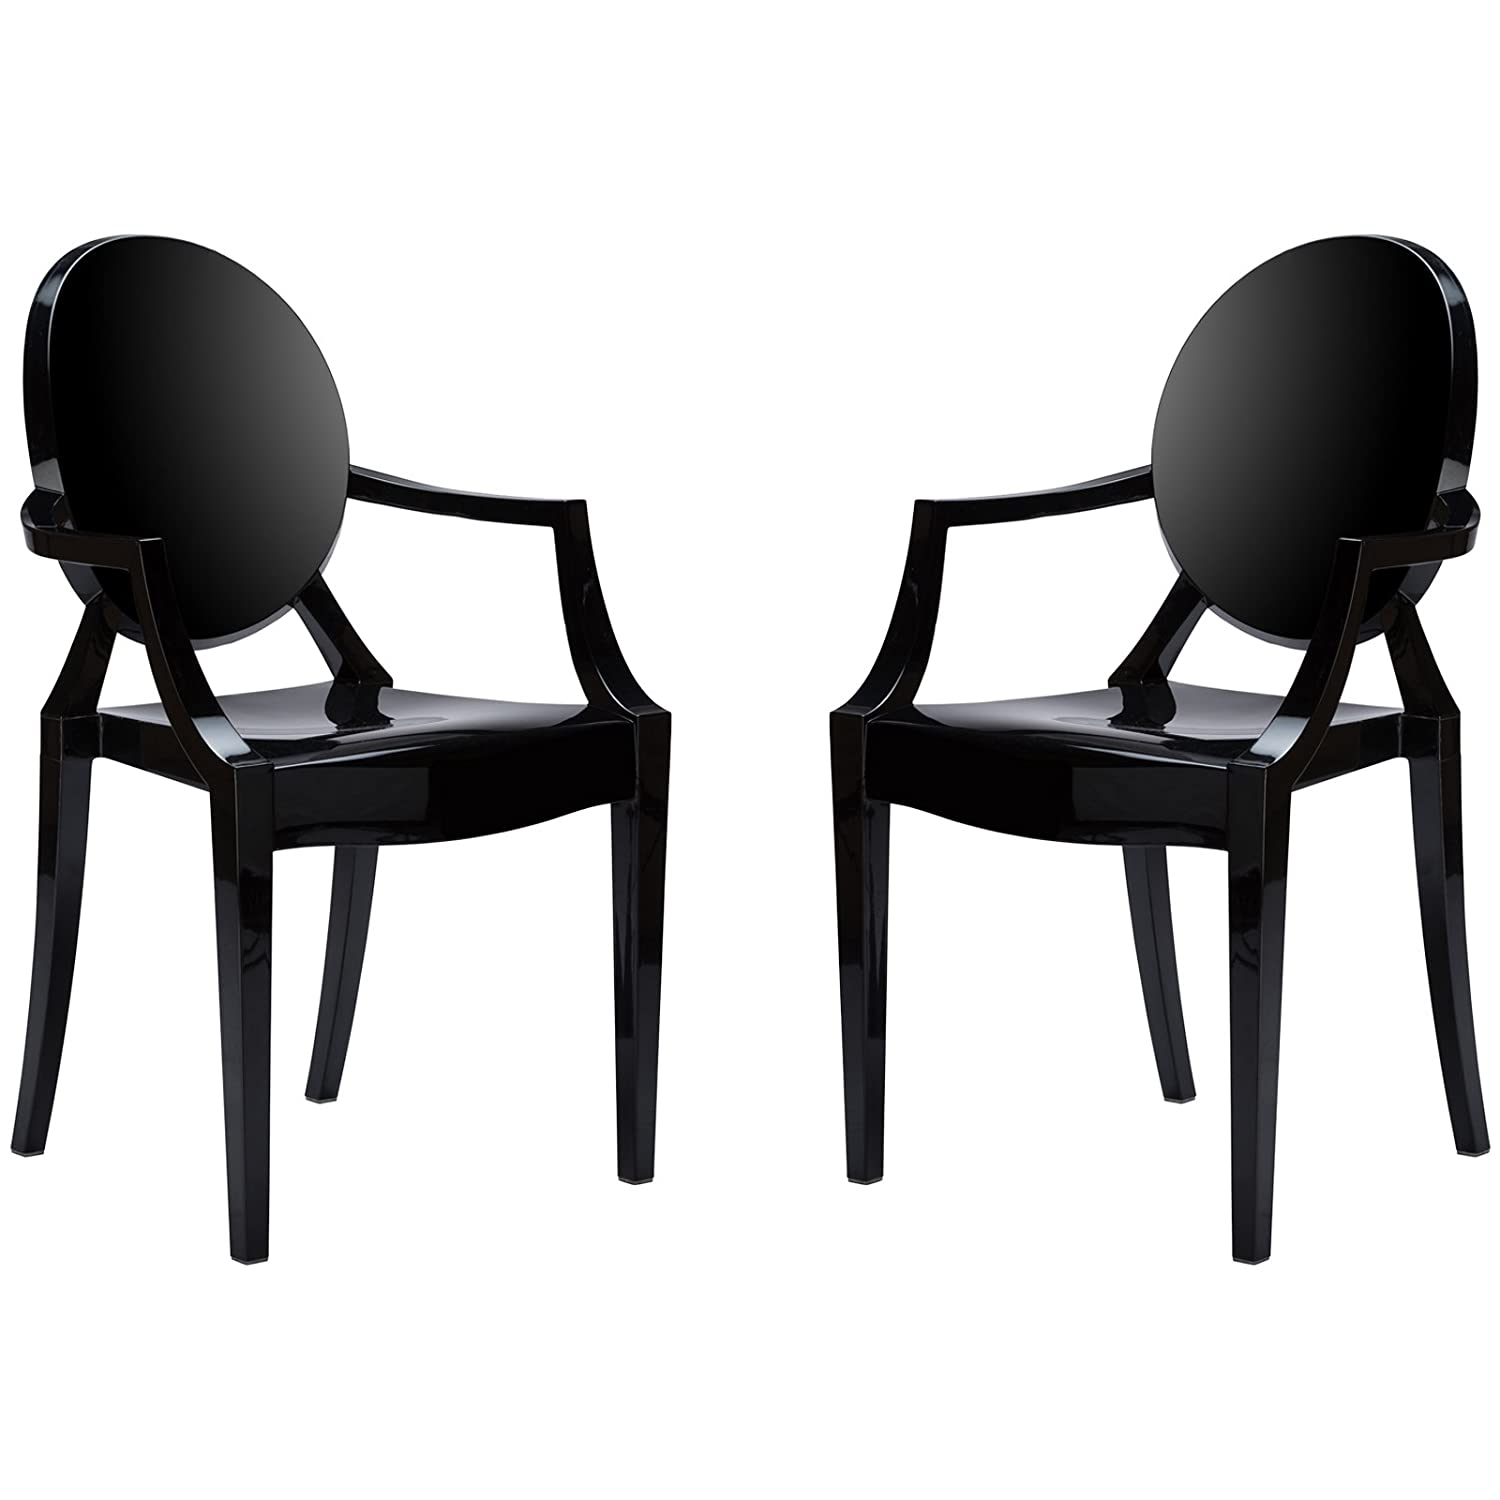 Poly and Bark Ghost Style Dining Armchair, Black, Set of 2